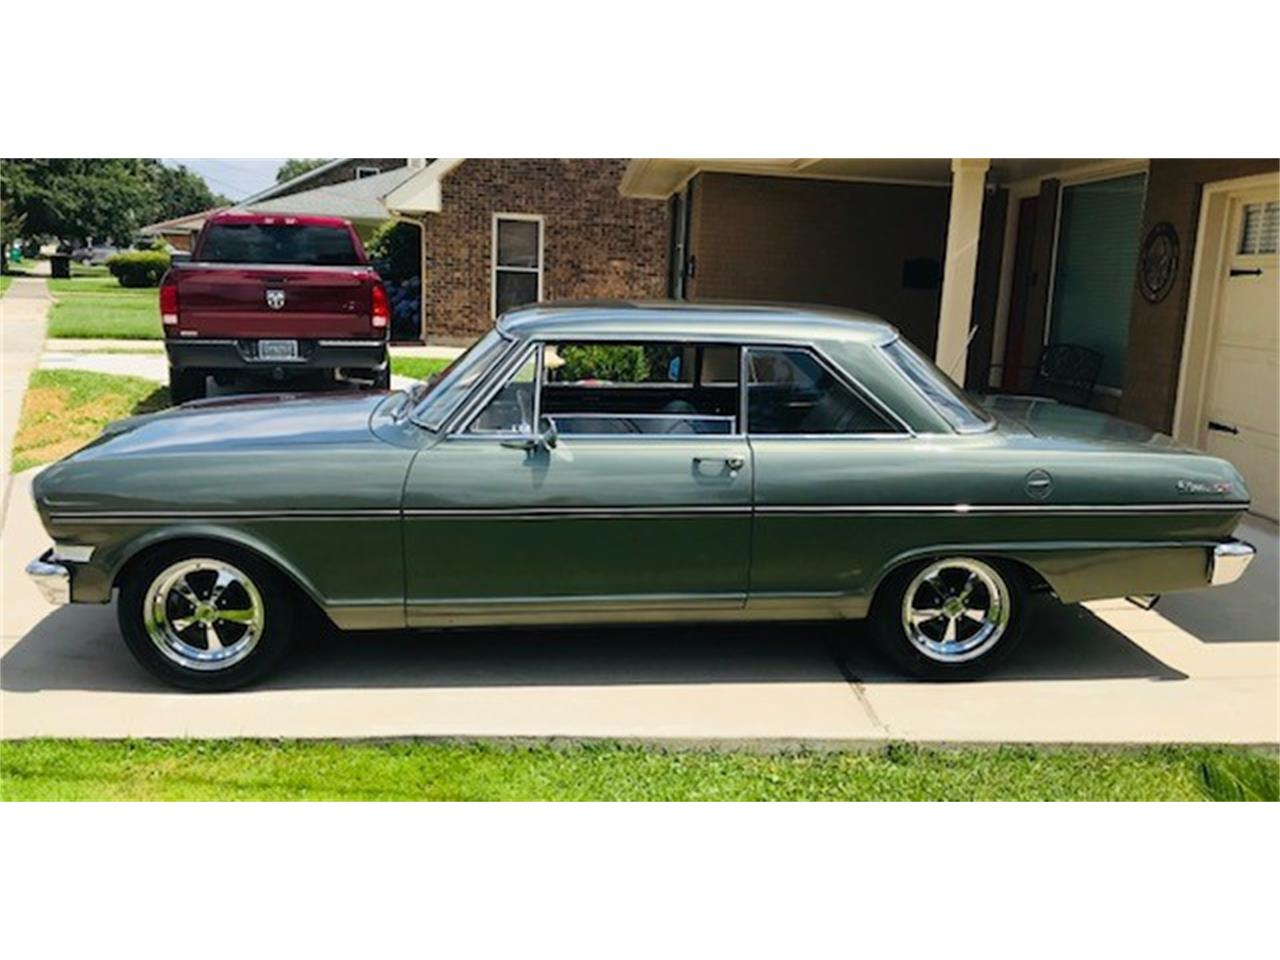 1963 Chevrolet Chevy II Nova SS for sale in Metairie, LA – photo 8